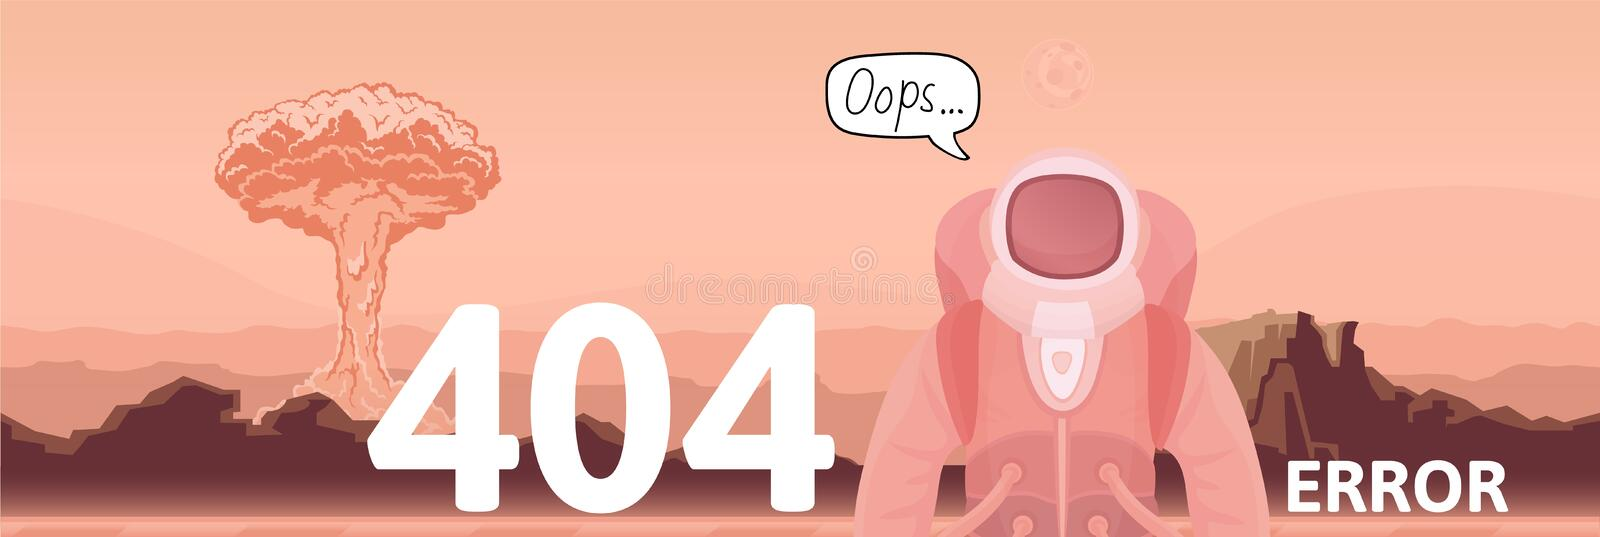 Astronaut and nuclear explosion on Mars desert background. Text warning message 404 error. Oops 404 error page, vector. Template for website. Colored flat royalty free illustration